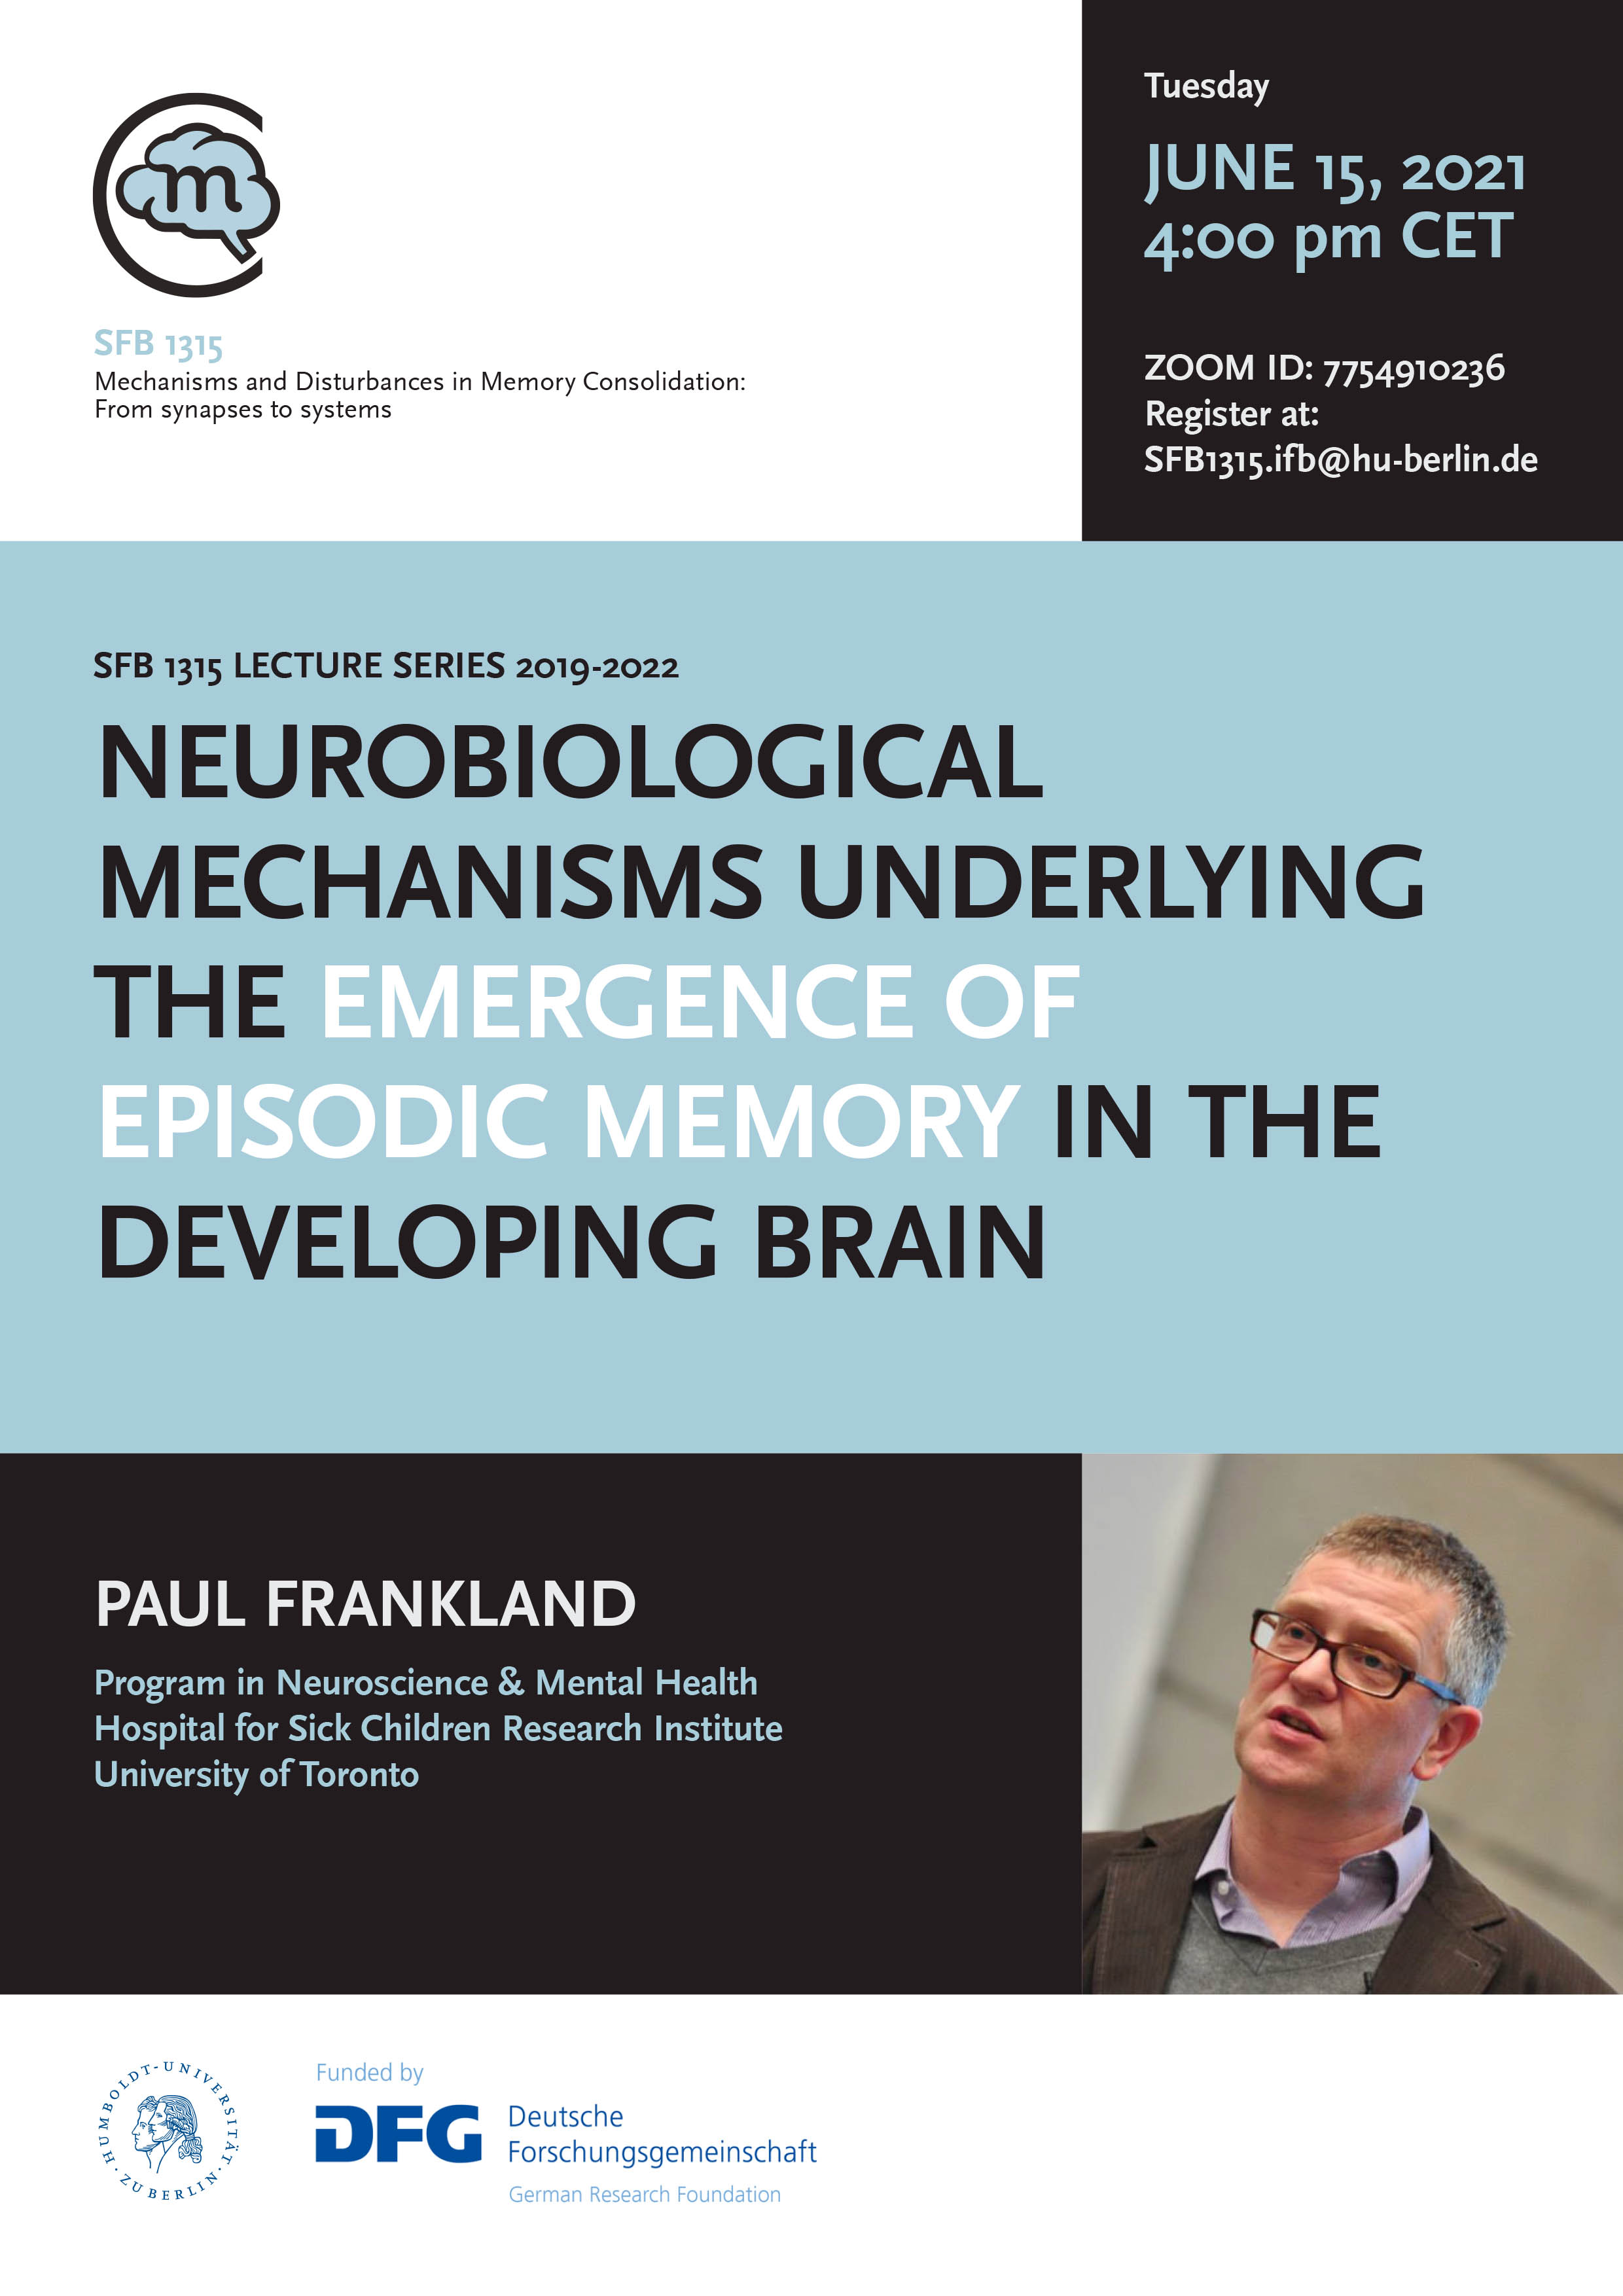 CRC 1315 Lecture: Neurobiological mechanisms underlying the emergence of episodic memory in the developing brain @ Zoom